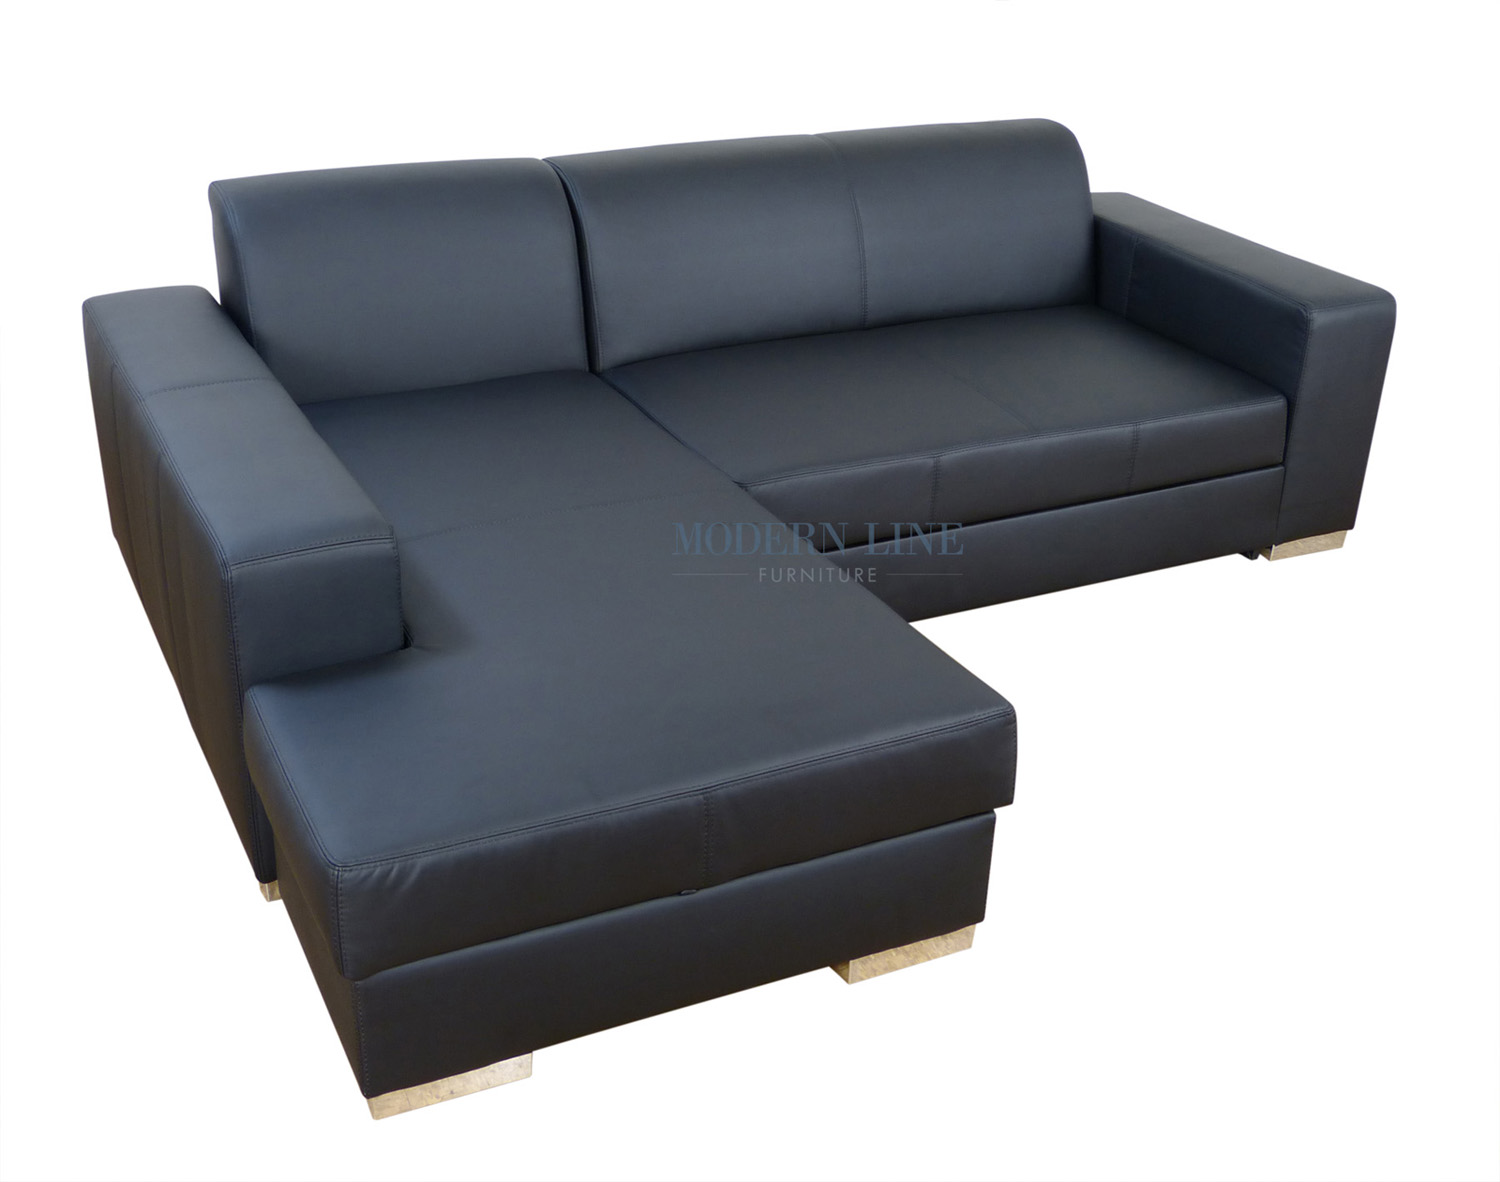 Modern Line Furniture - Commercial Furniture - Custom Made Furniture | Modern Leather or Fabric Sectional Sofa Sleeper With Storage  sc 1 st  Modern Line Furniture : sectional sofa sleeper with storage - Sectionals, Sofas & Couches